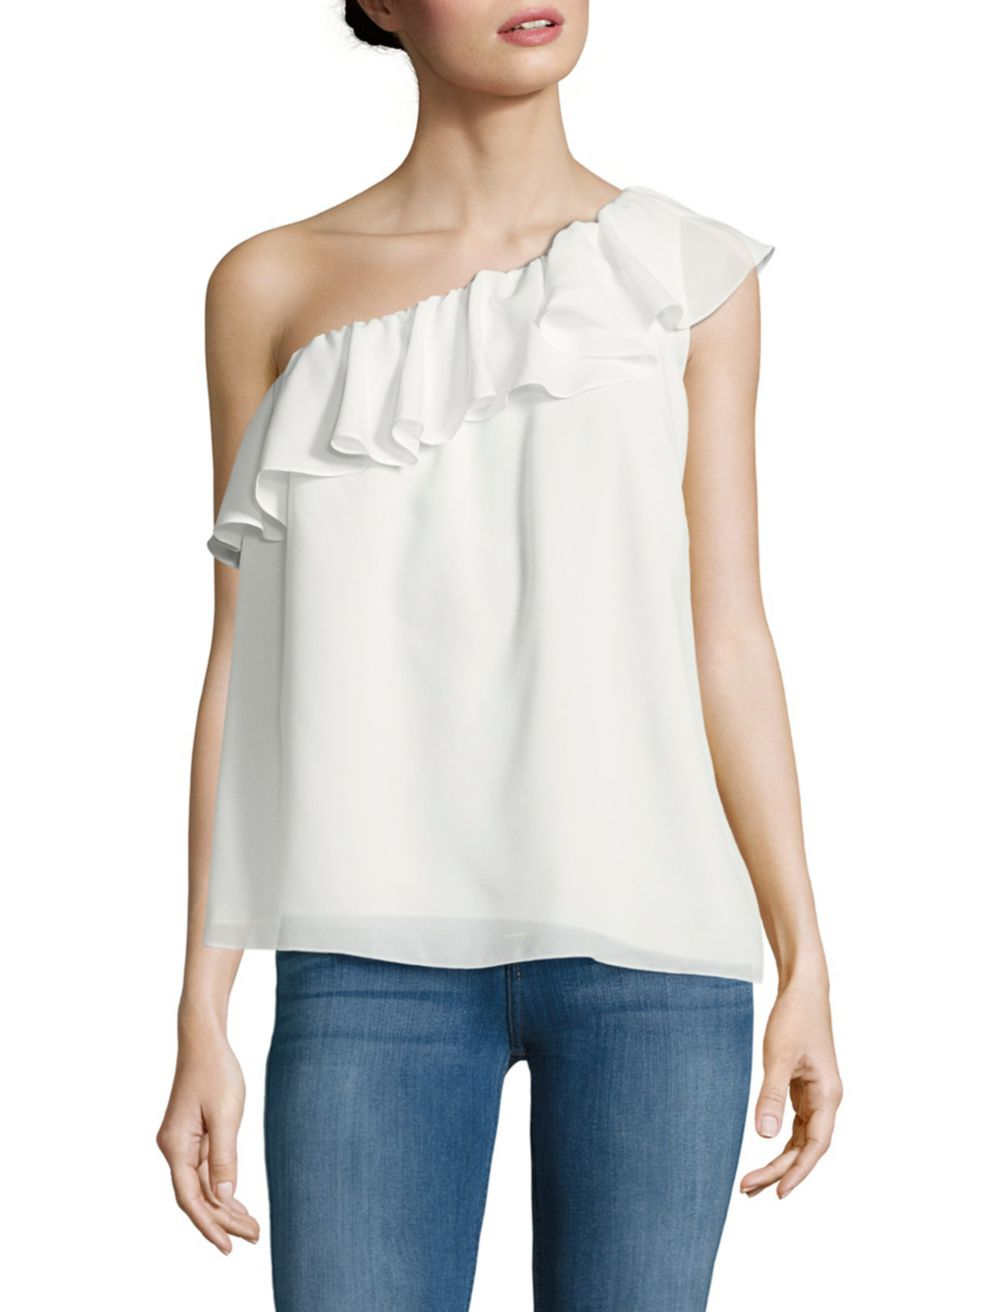 One-shoulder glam. - This top is so easy to wear, that you can literally wear it with anything under the sun. This summery tie-up is begging to be paired with a pair of high-waisted shorts or a nice skirt with sailor stripes. This is a great top to try an all-white look with. Pair it with nice white linen pants or shorts, and add a tan-belt and mirrored sunglasses to make it movie-star glam!